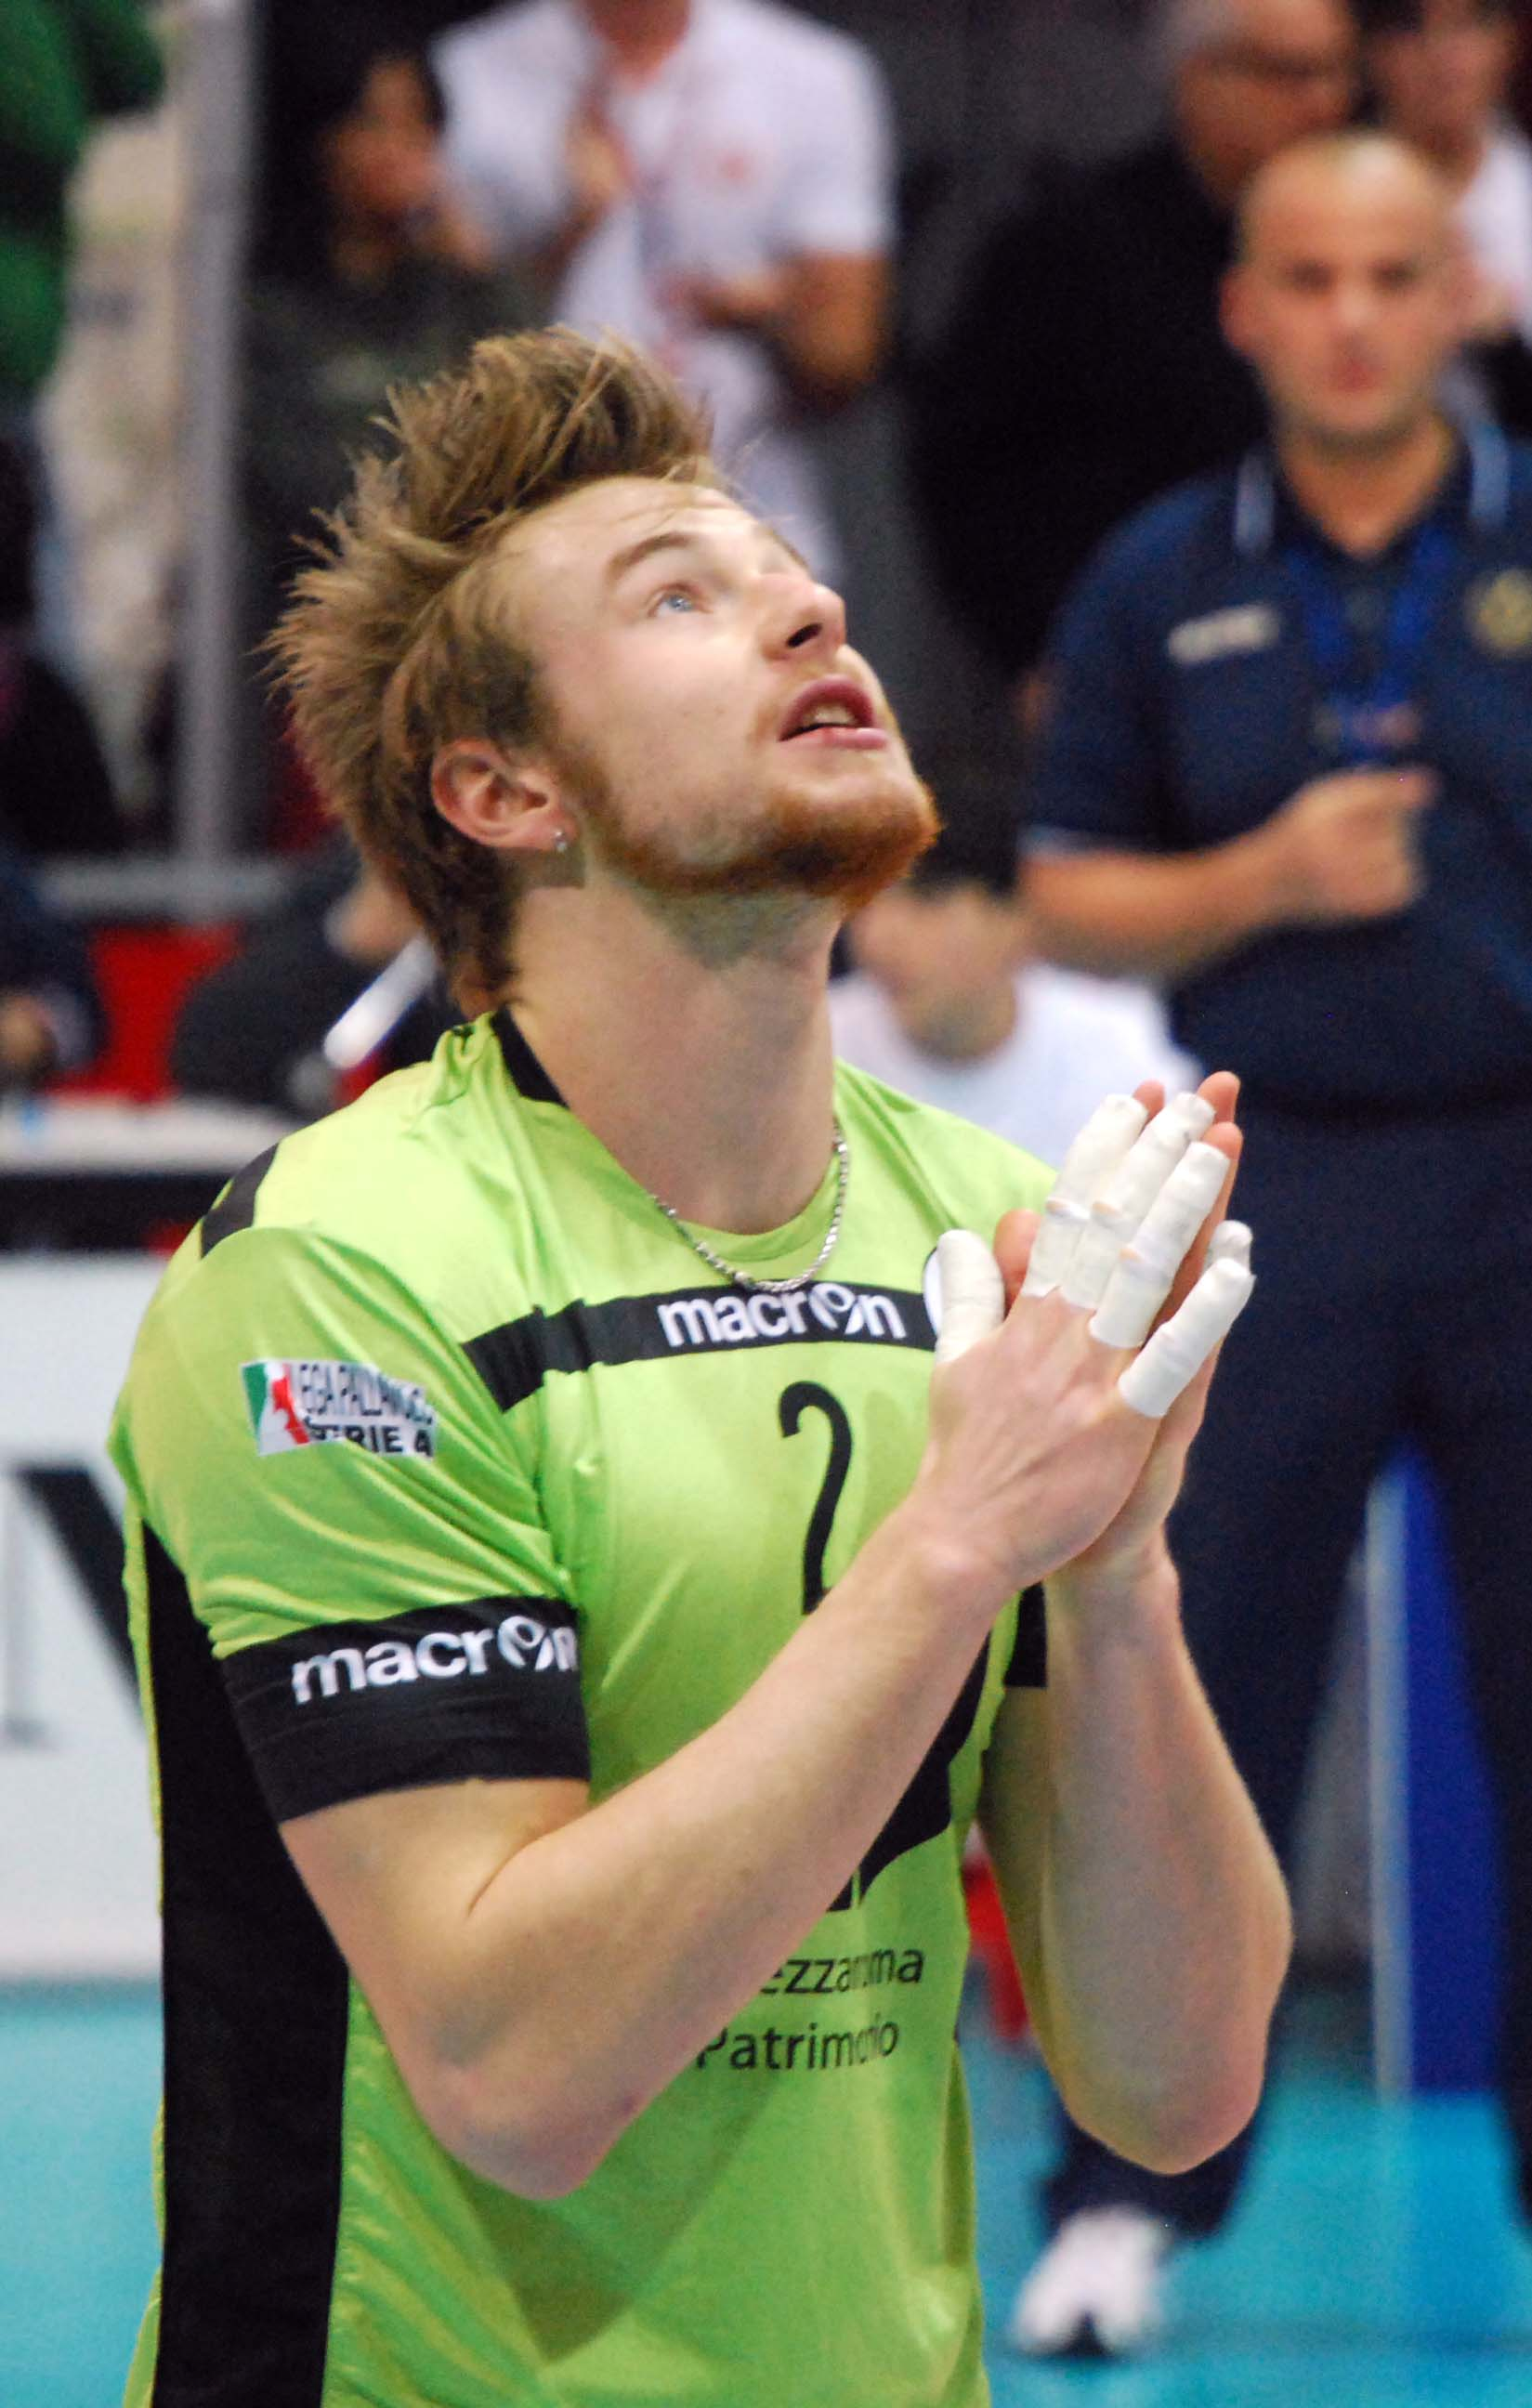 zaytsev - photo #43